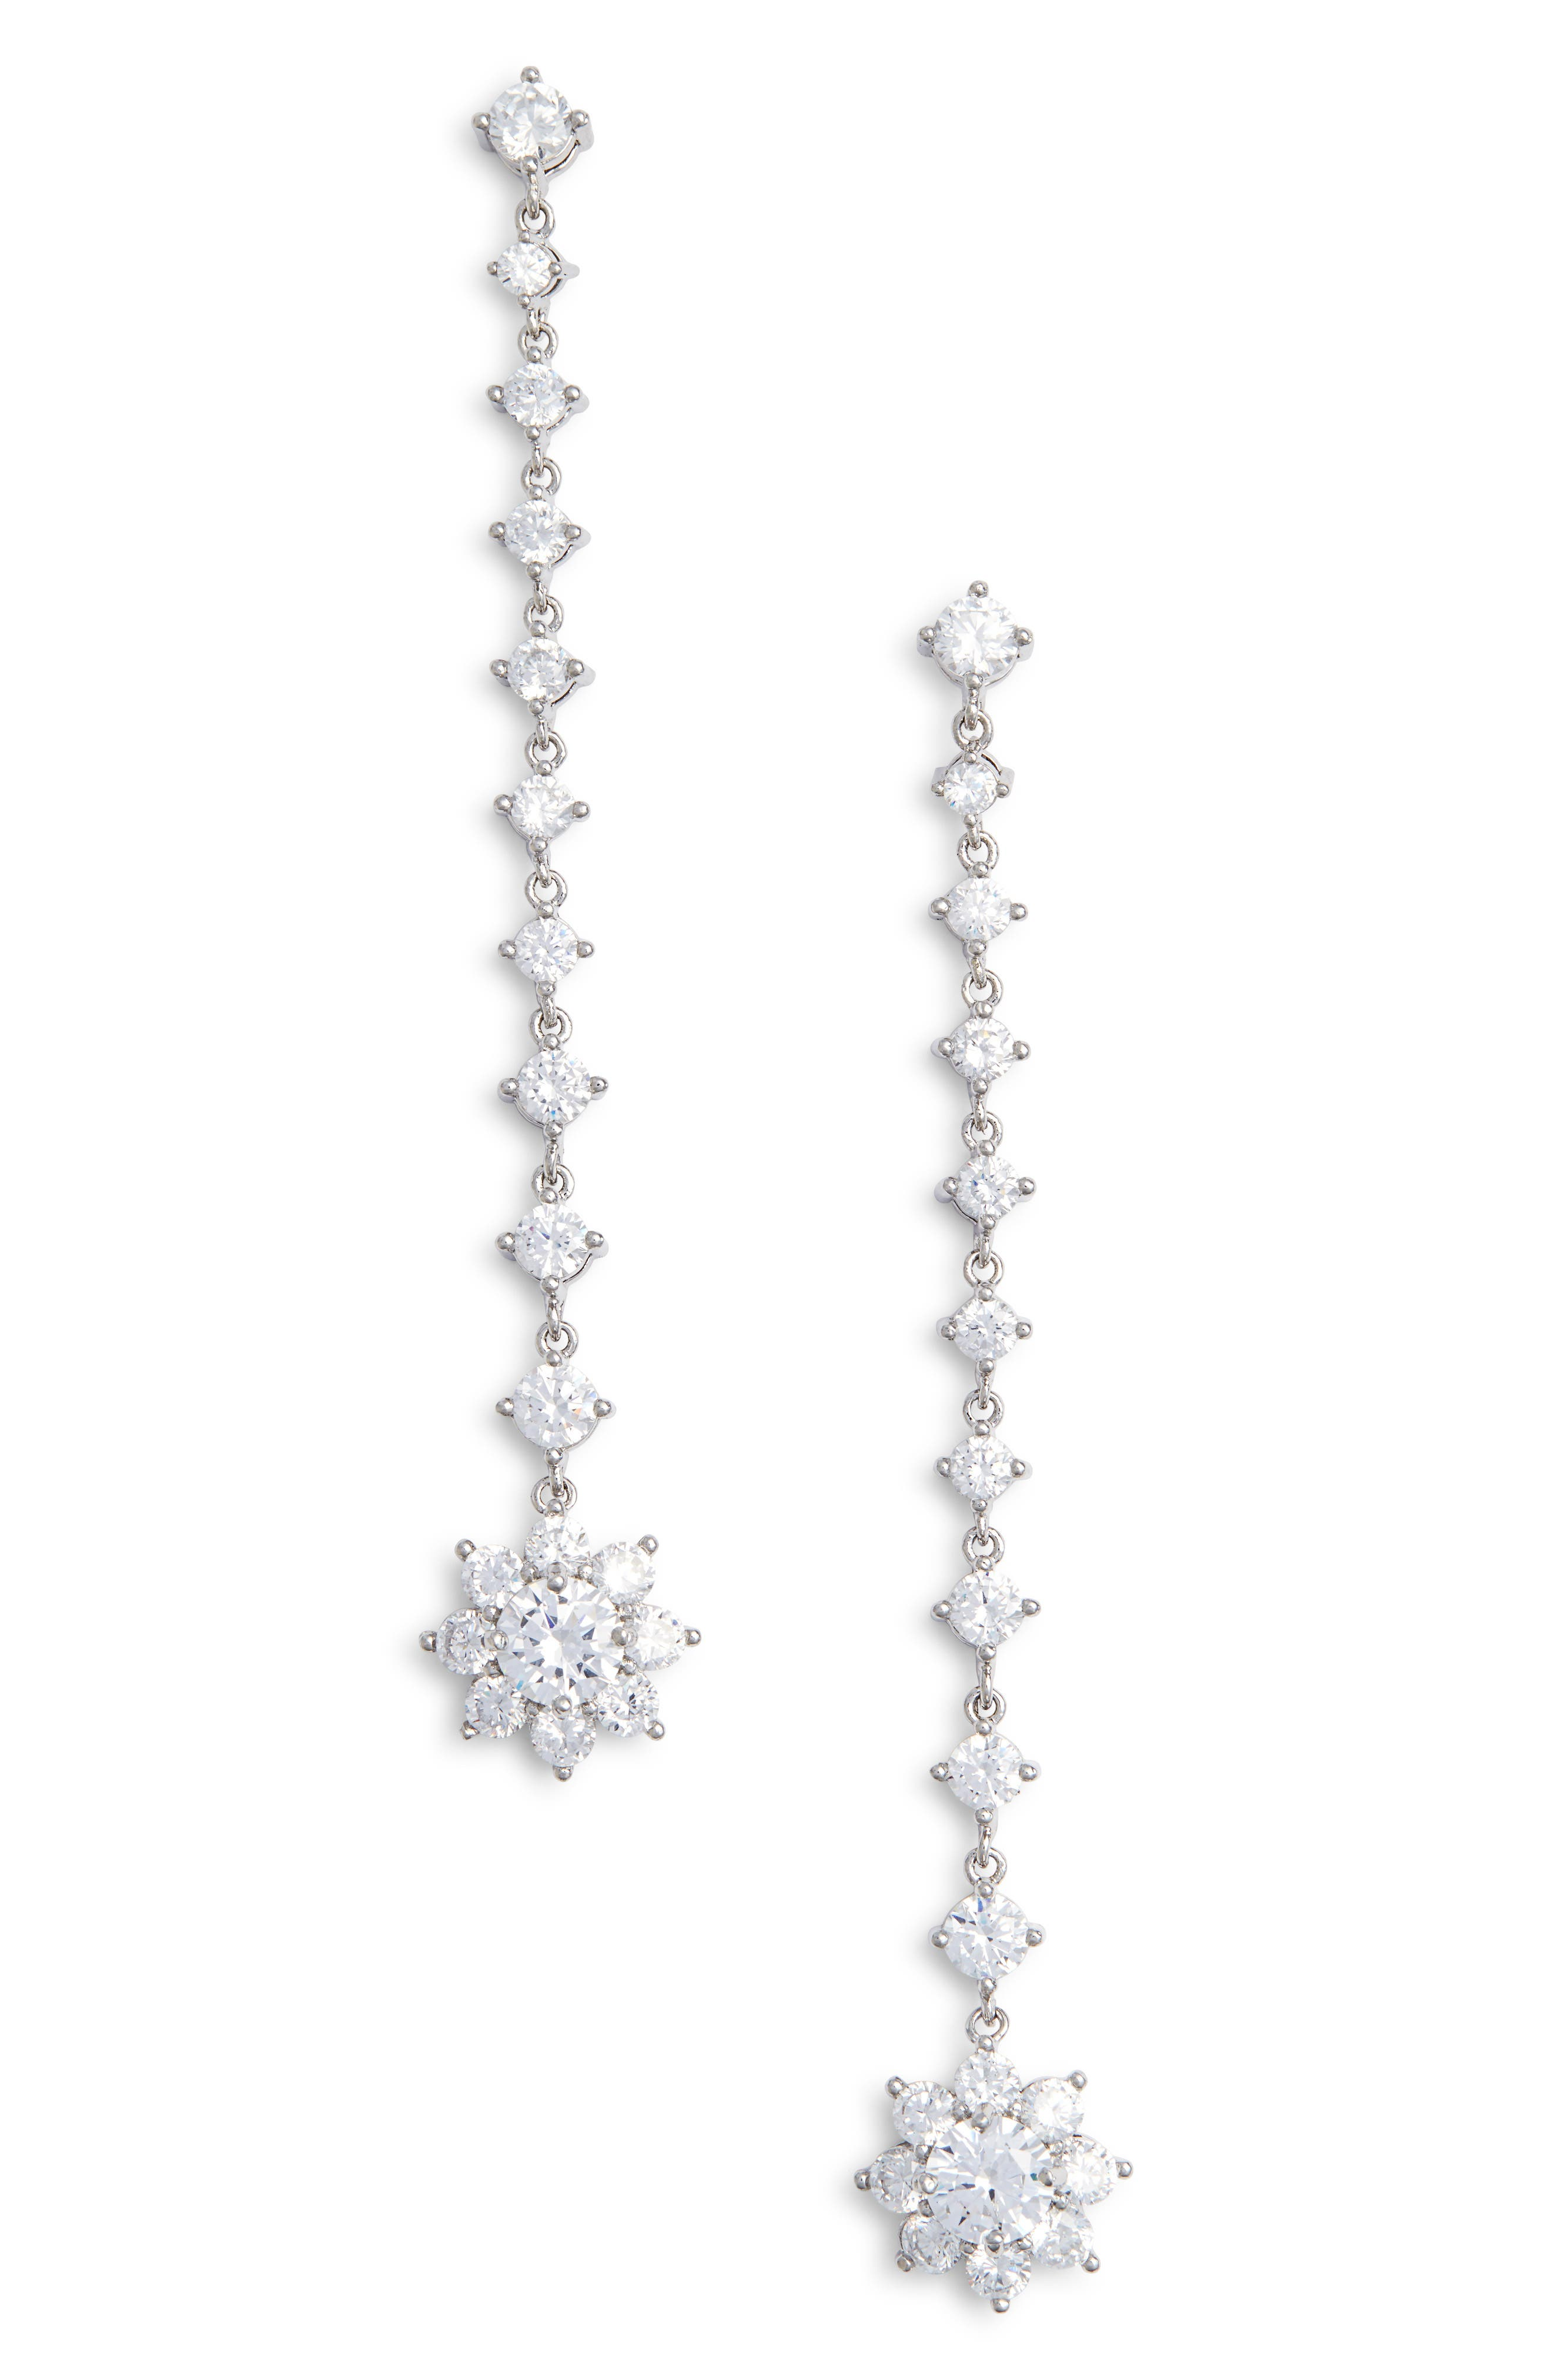 Small Flower Linear Drop Earrings,                             Main thumbnail 1, color,                             SILVER/ WHITE CZ